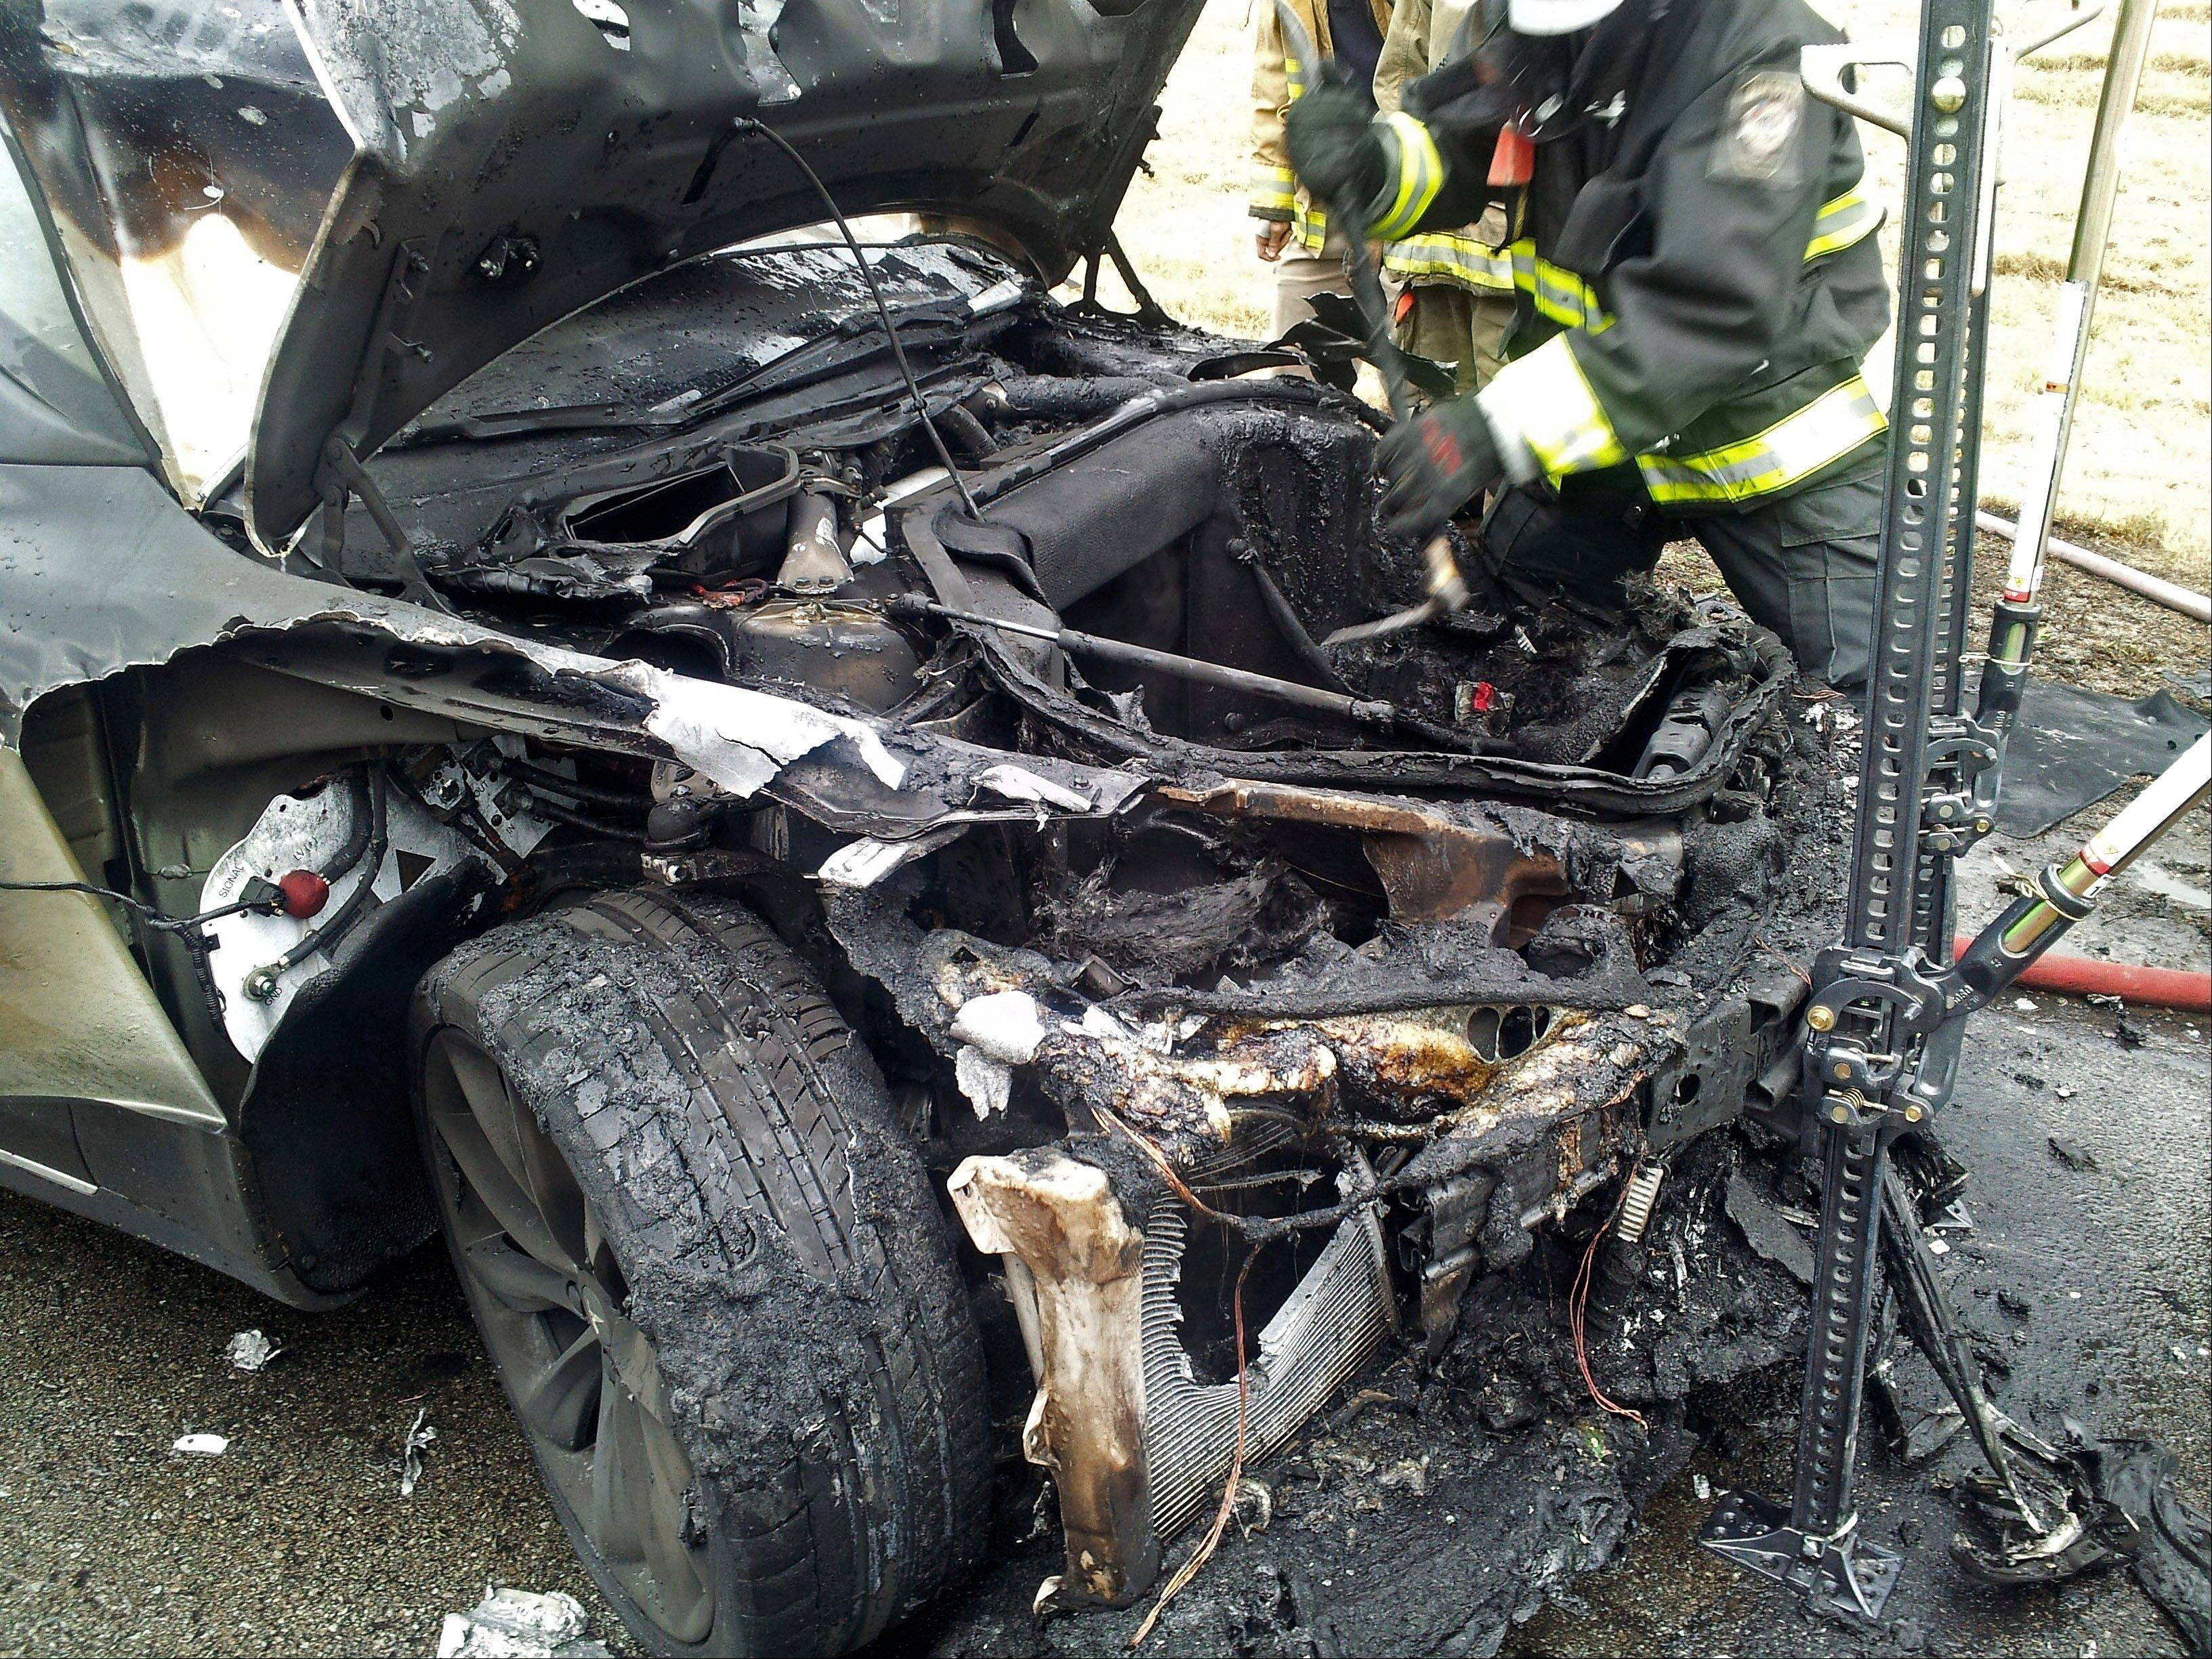 Emergency workers respond to a fire on a Tesla Model S electric car in Smyrna, Tenn., in this file photo from Nov. 6. The National Highway Traffic Administration has opened an investigation into battery fires in Tesla Model S electric cars.